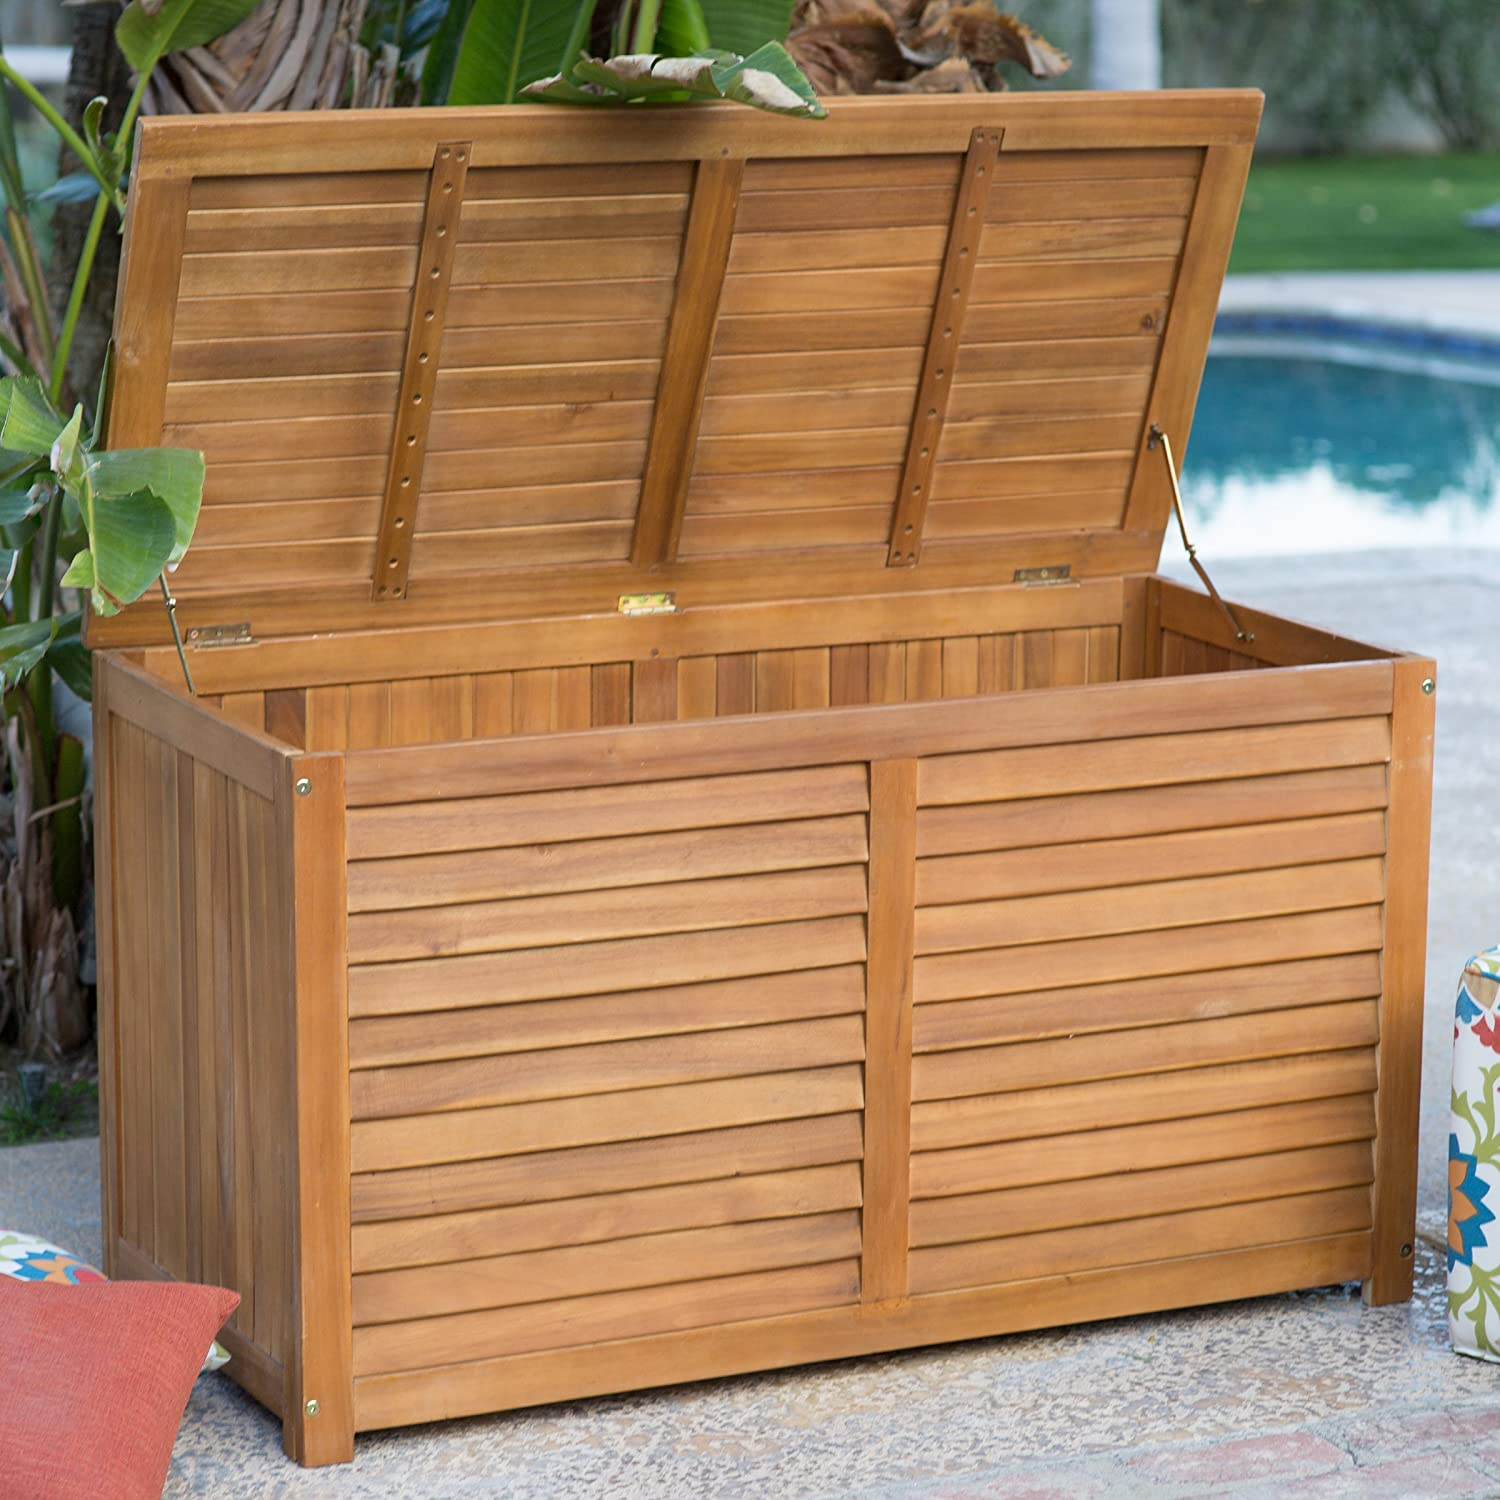 amazon com 90 gallon outdoor wood storage deck box weather